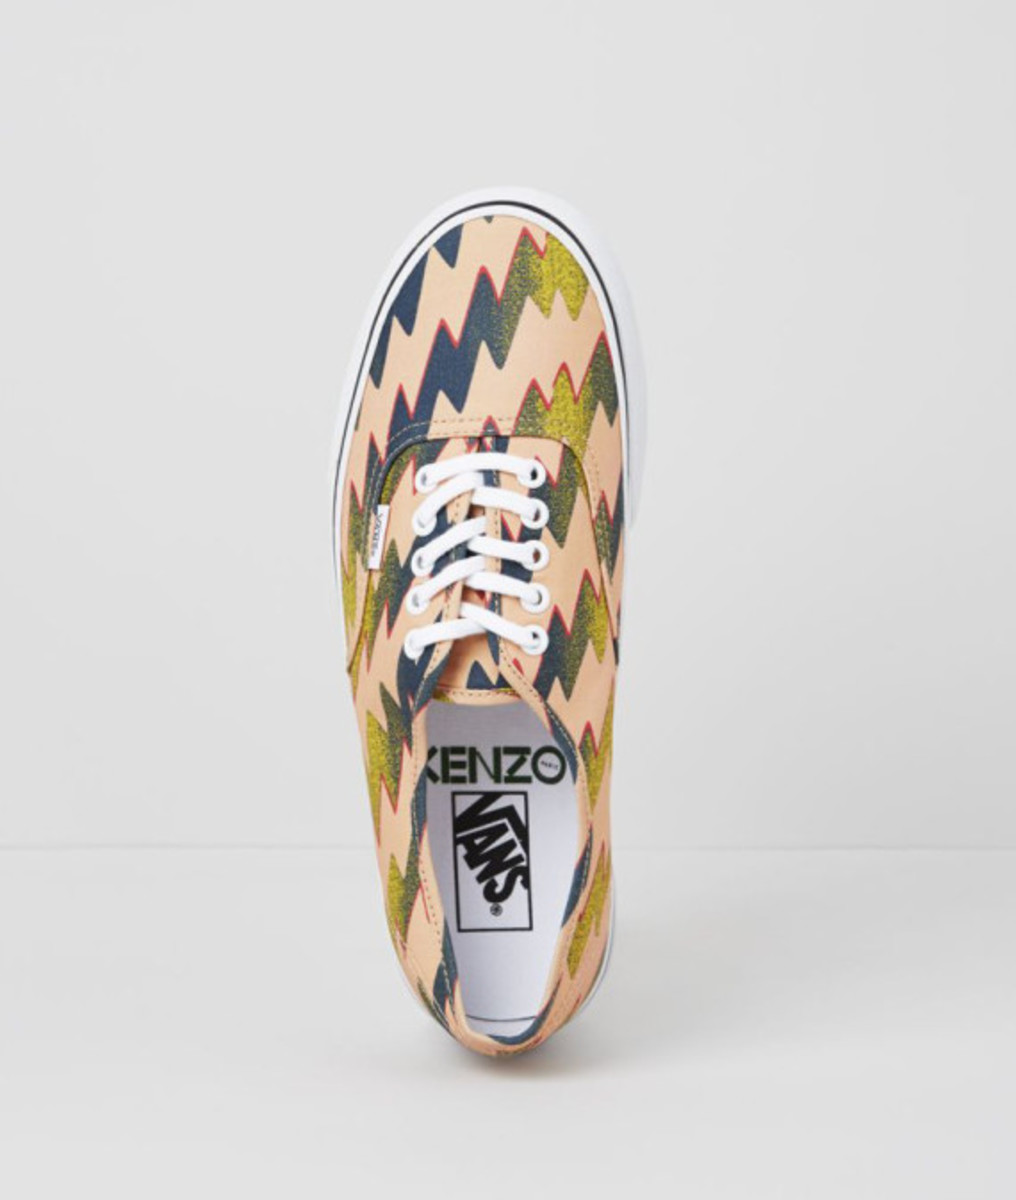 kenzo-vans-fall-2013-collection-04